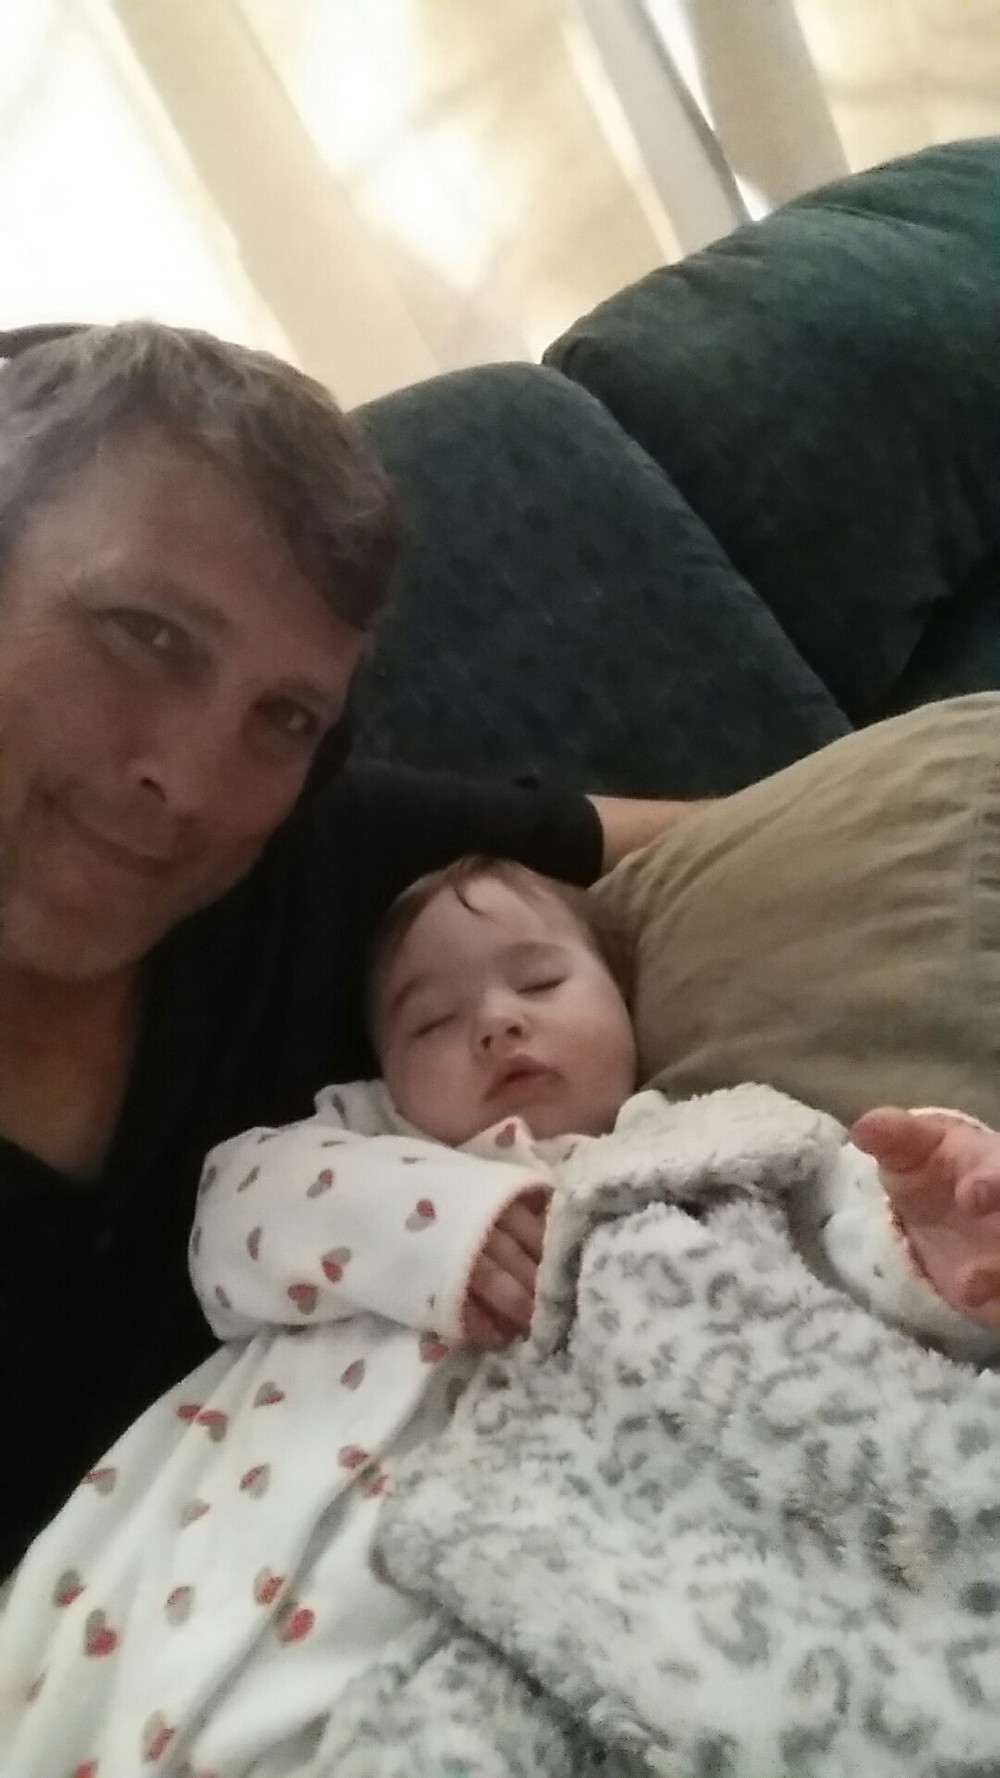 Dad holding sleeping baby on a pillow.